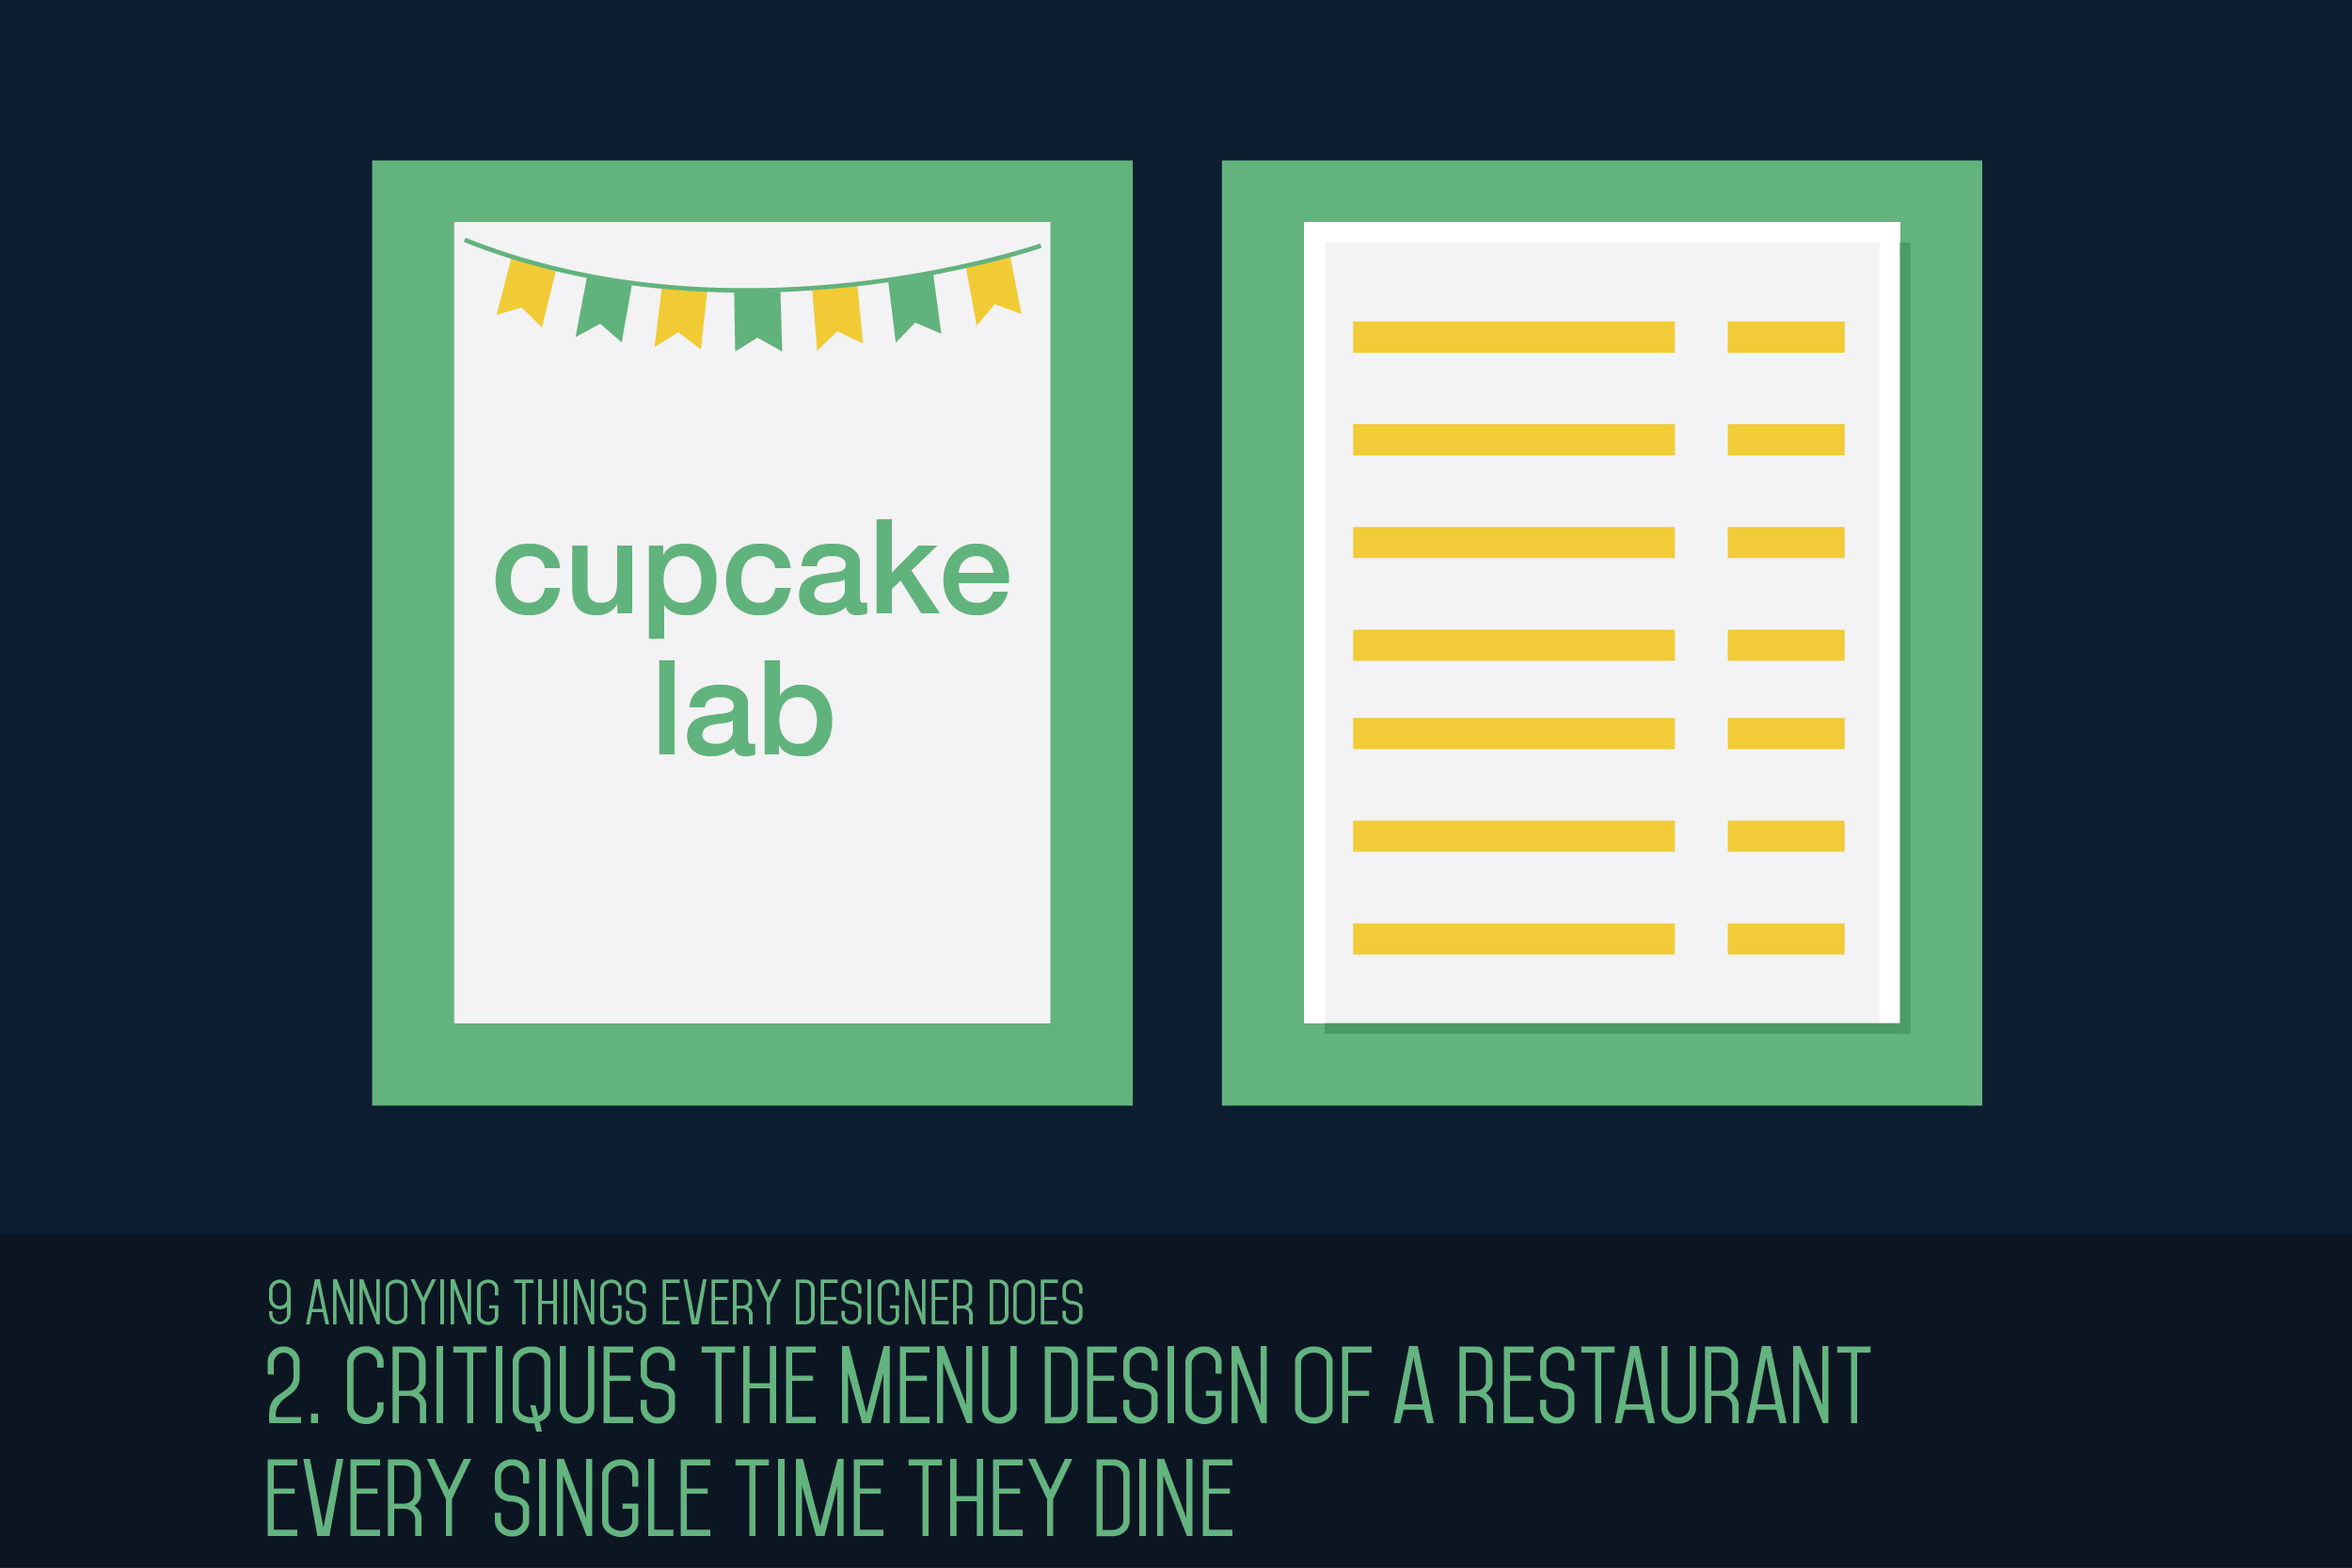 annoying things every designer does